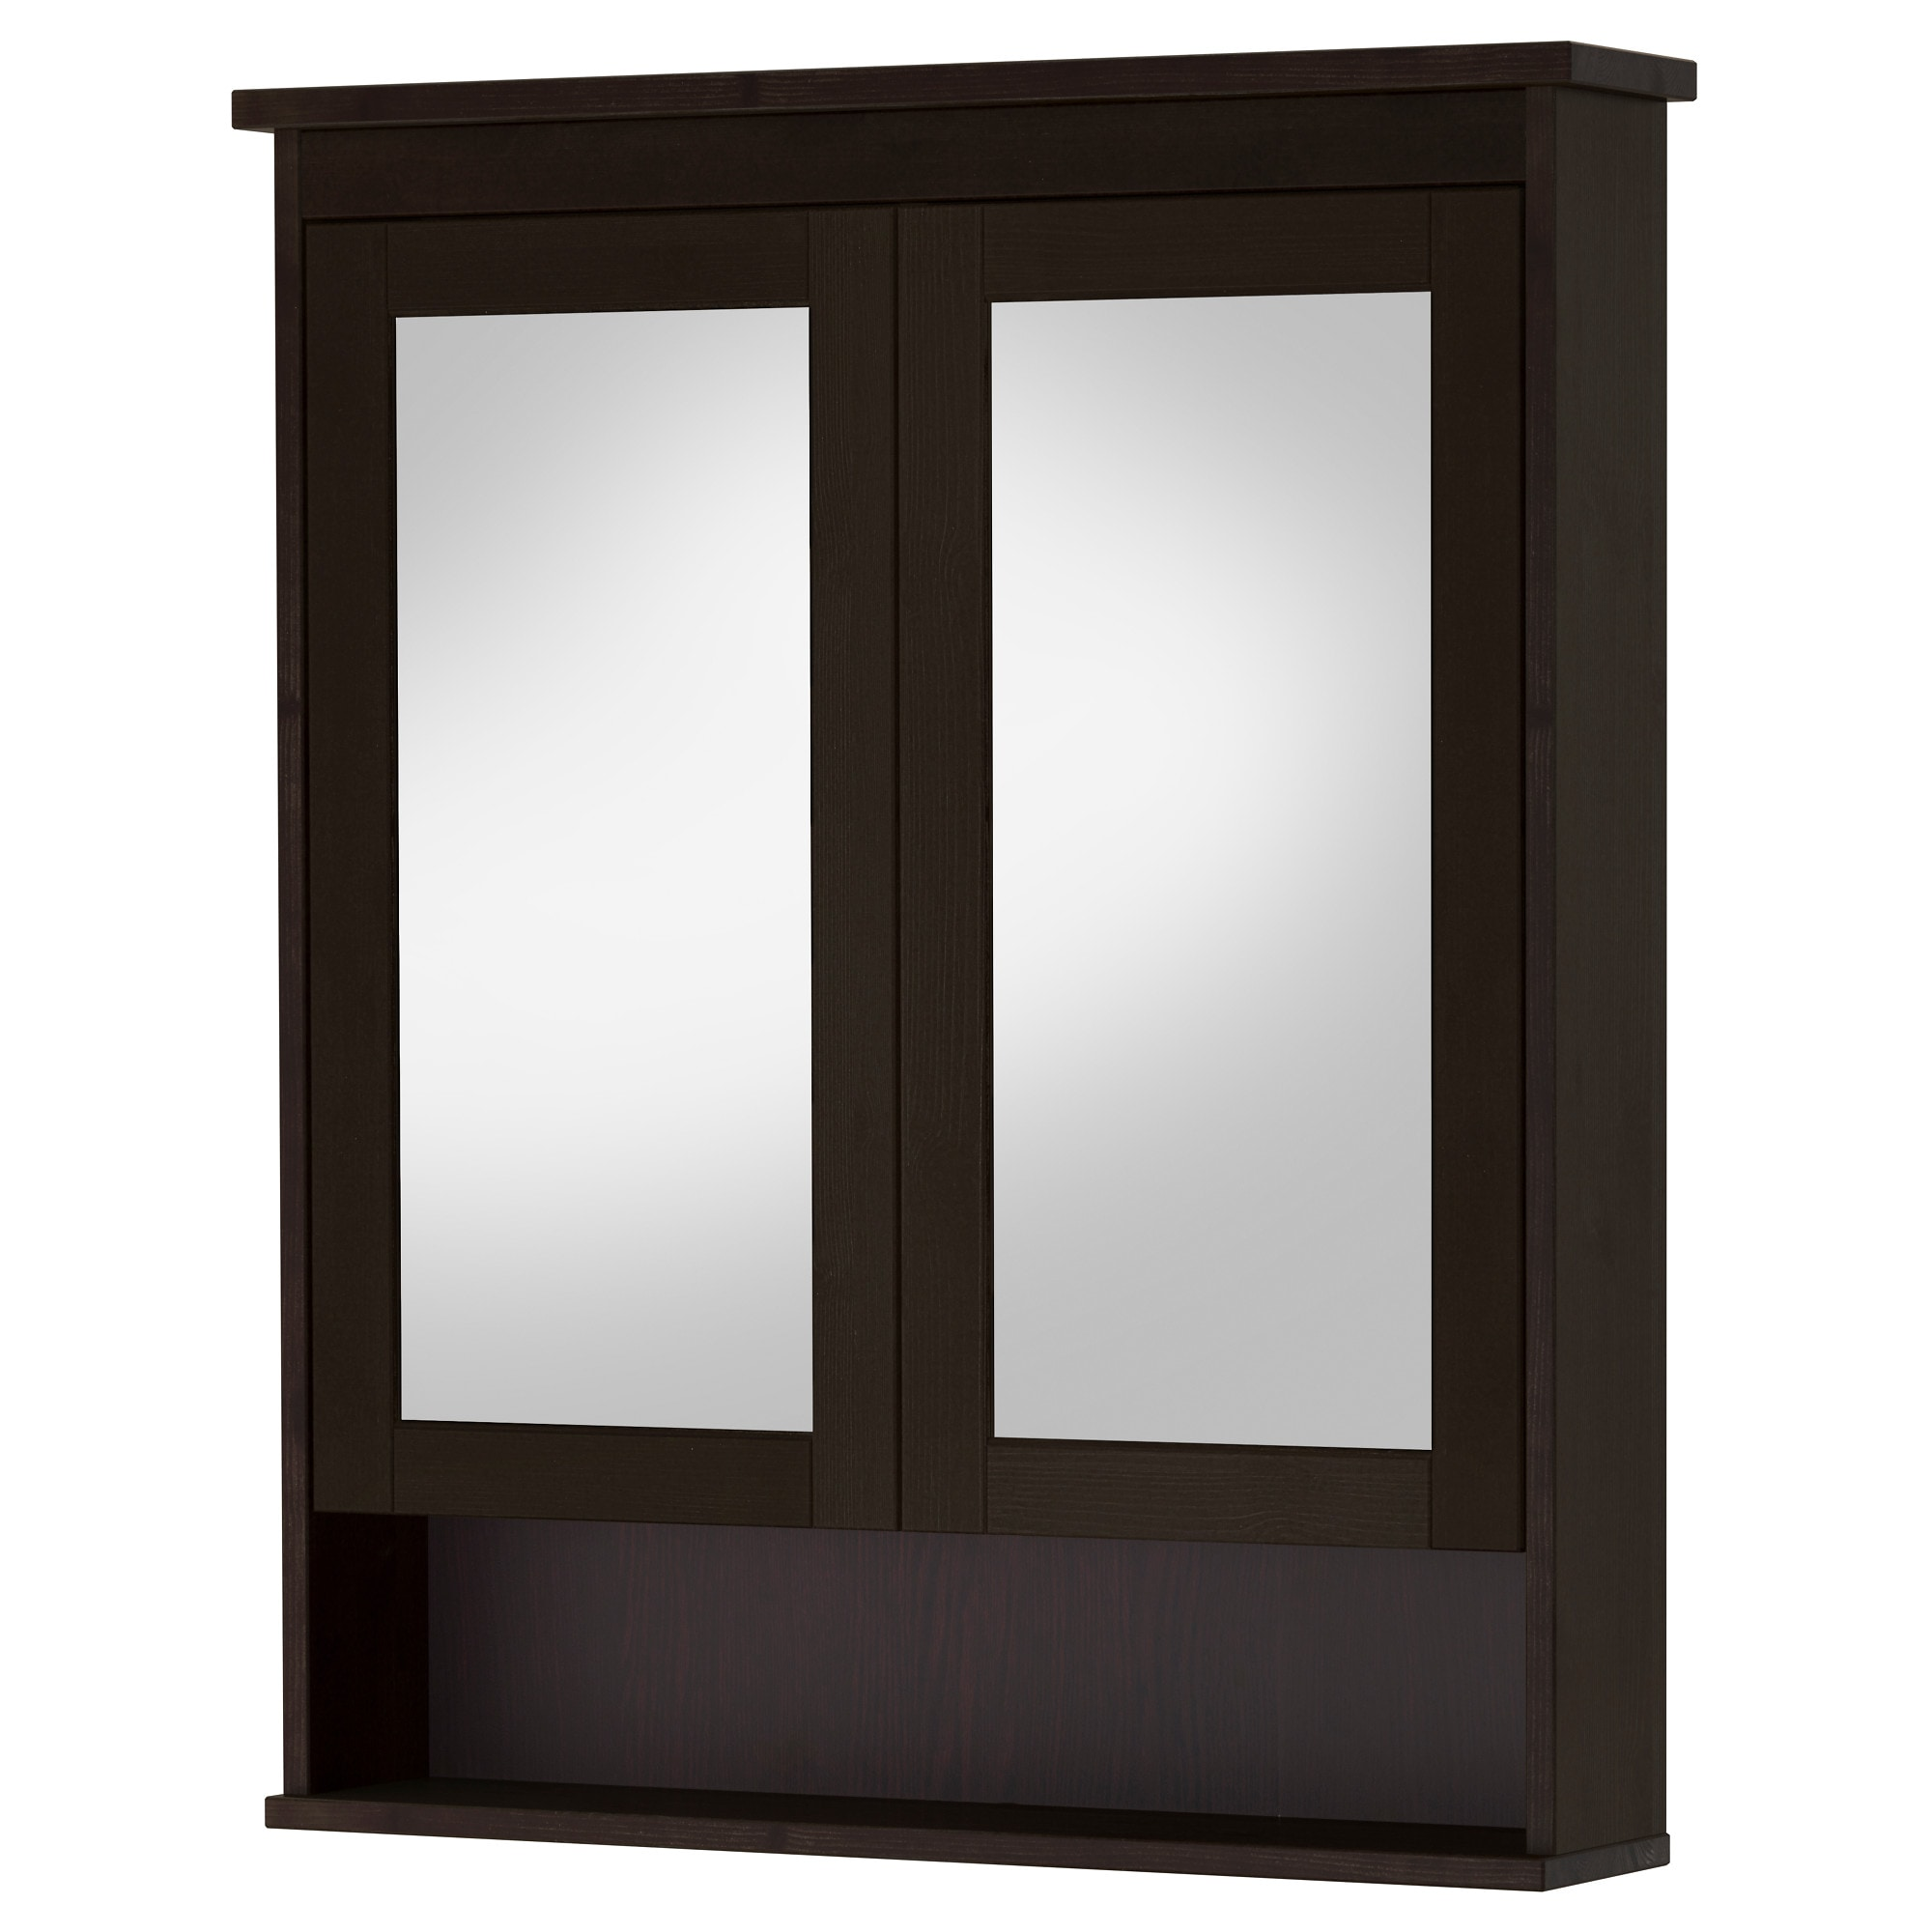 HEMNES Mirror Cabinet With 2 Doors   Black Brown Stain, 83x16x98 Cm   IKEA Part 91